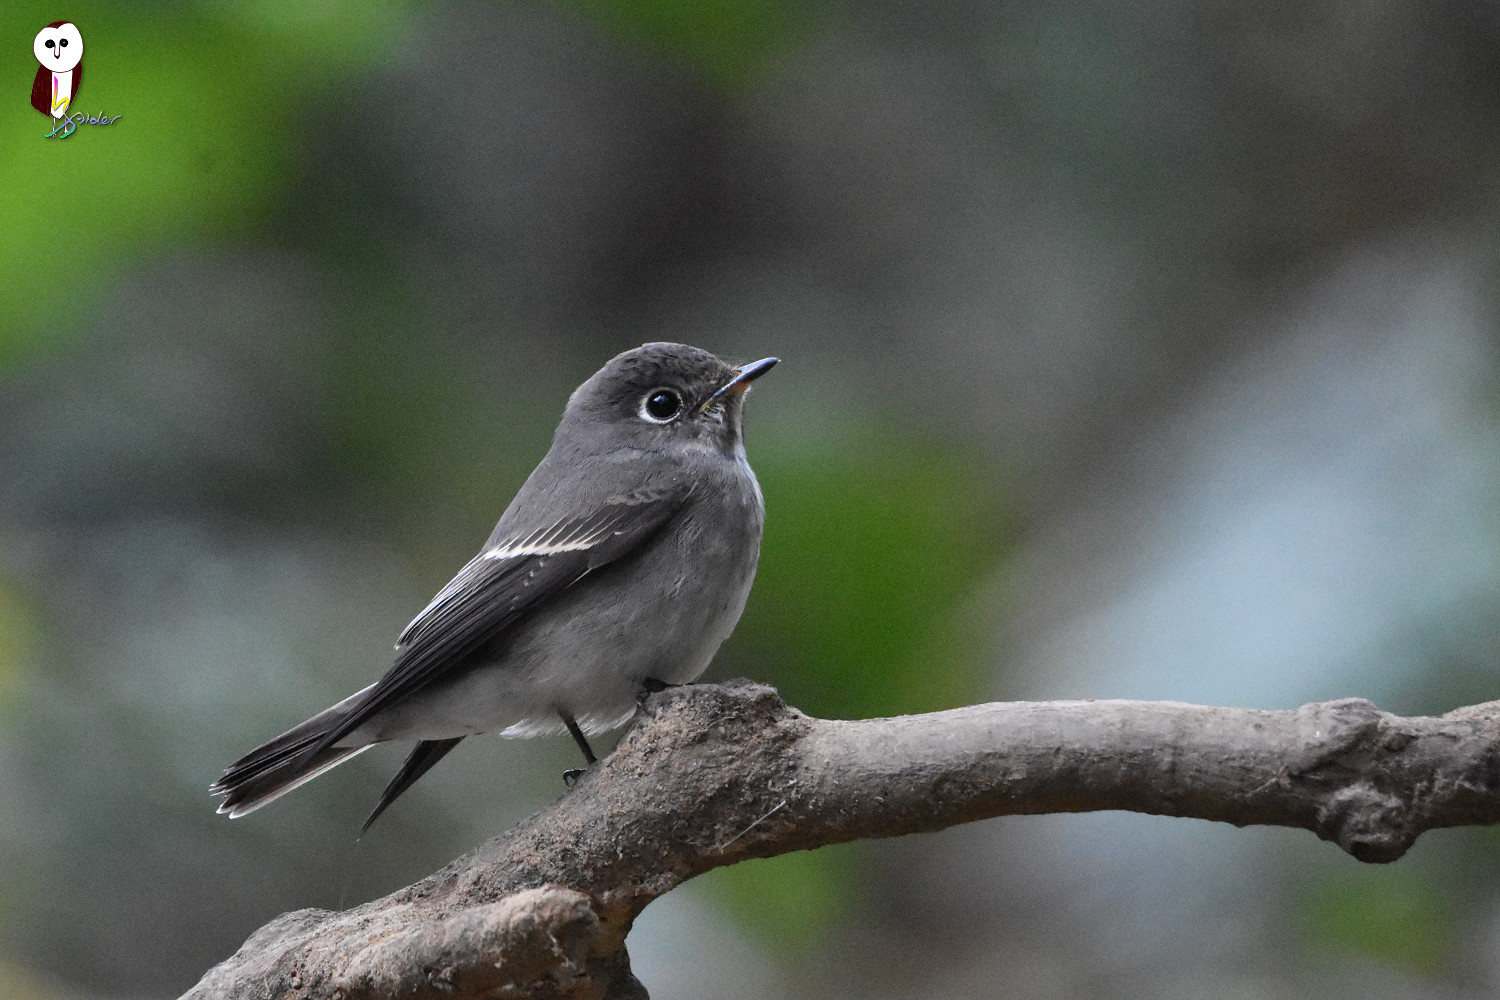 Dark-sided_Flycatcher_5069